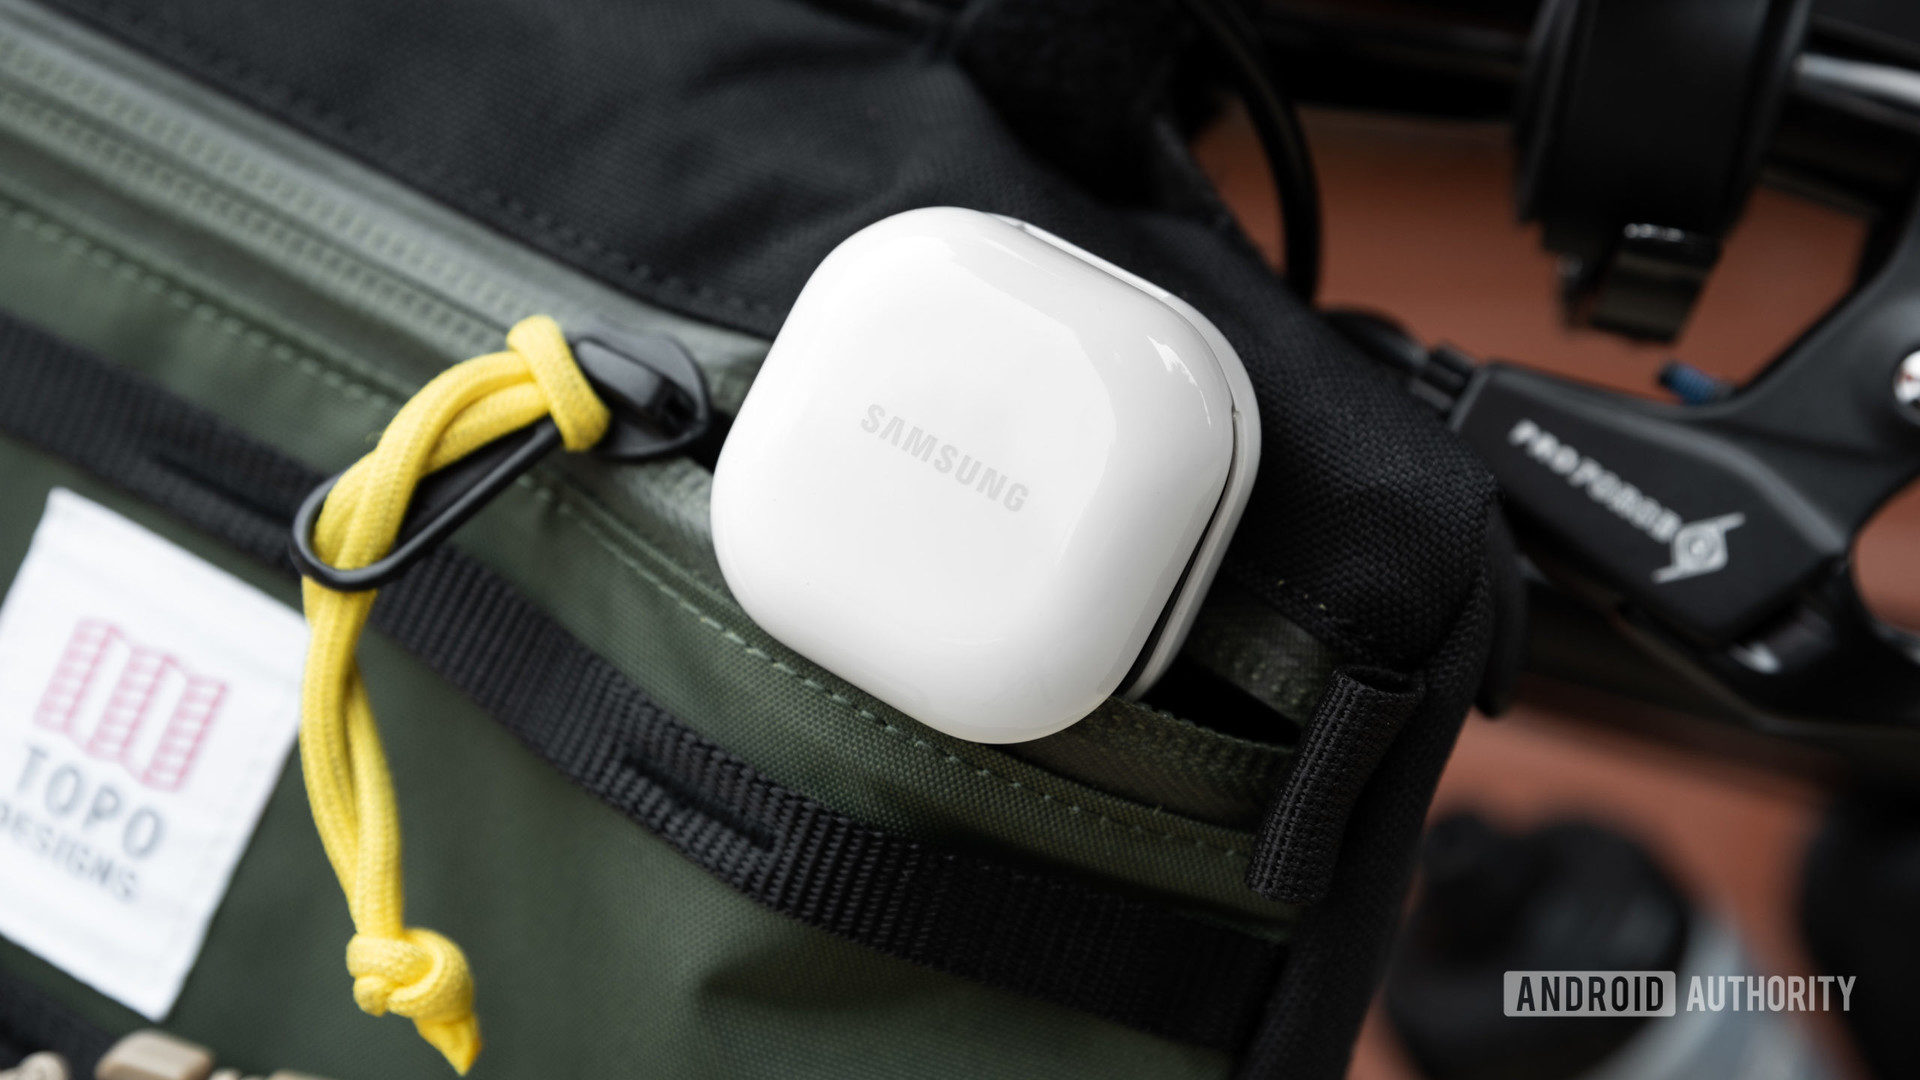 The Samsung Galaxy Buds 2 noise cancelling true wireless earbuds case partway in a zippered bag.